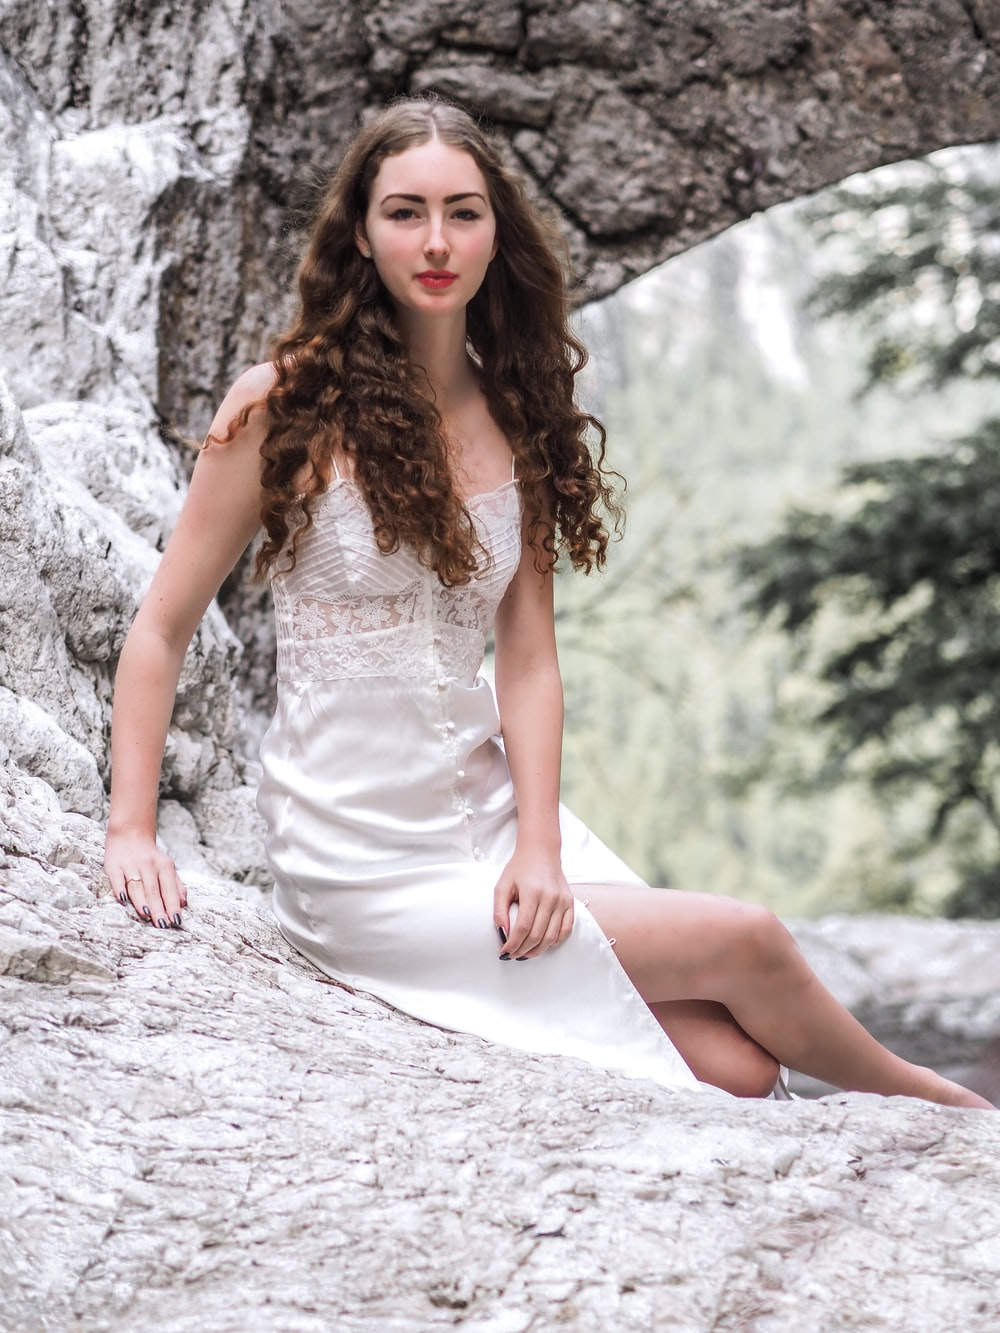 smiling woman in white button-up dress sitting on rock